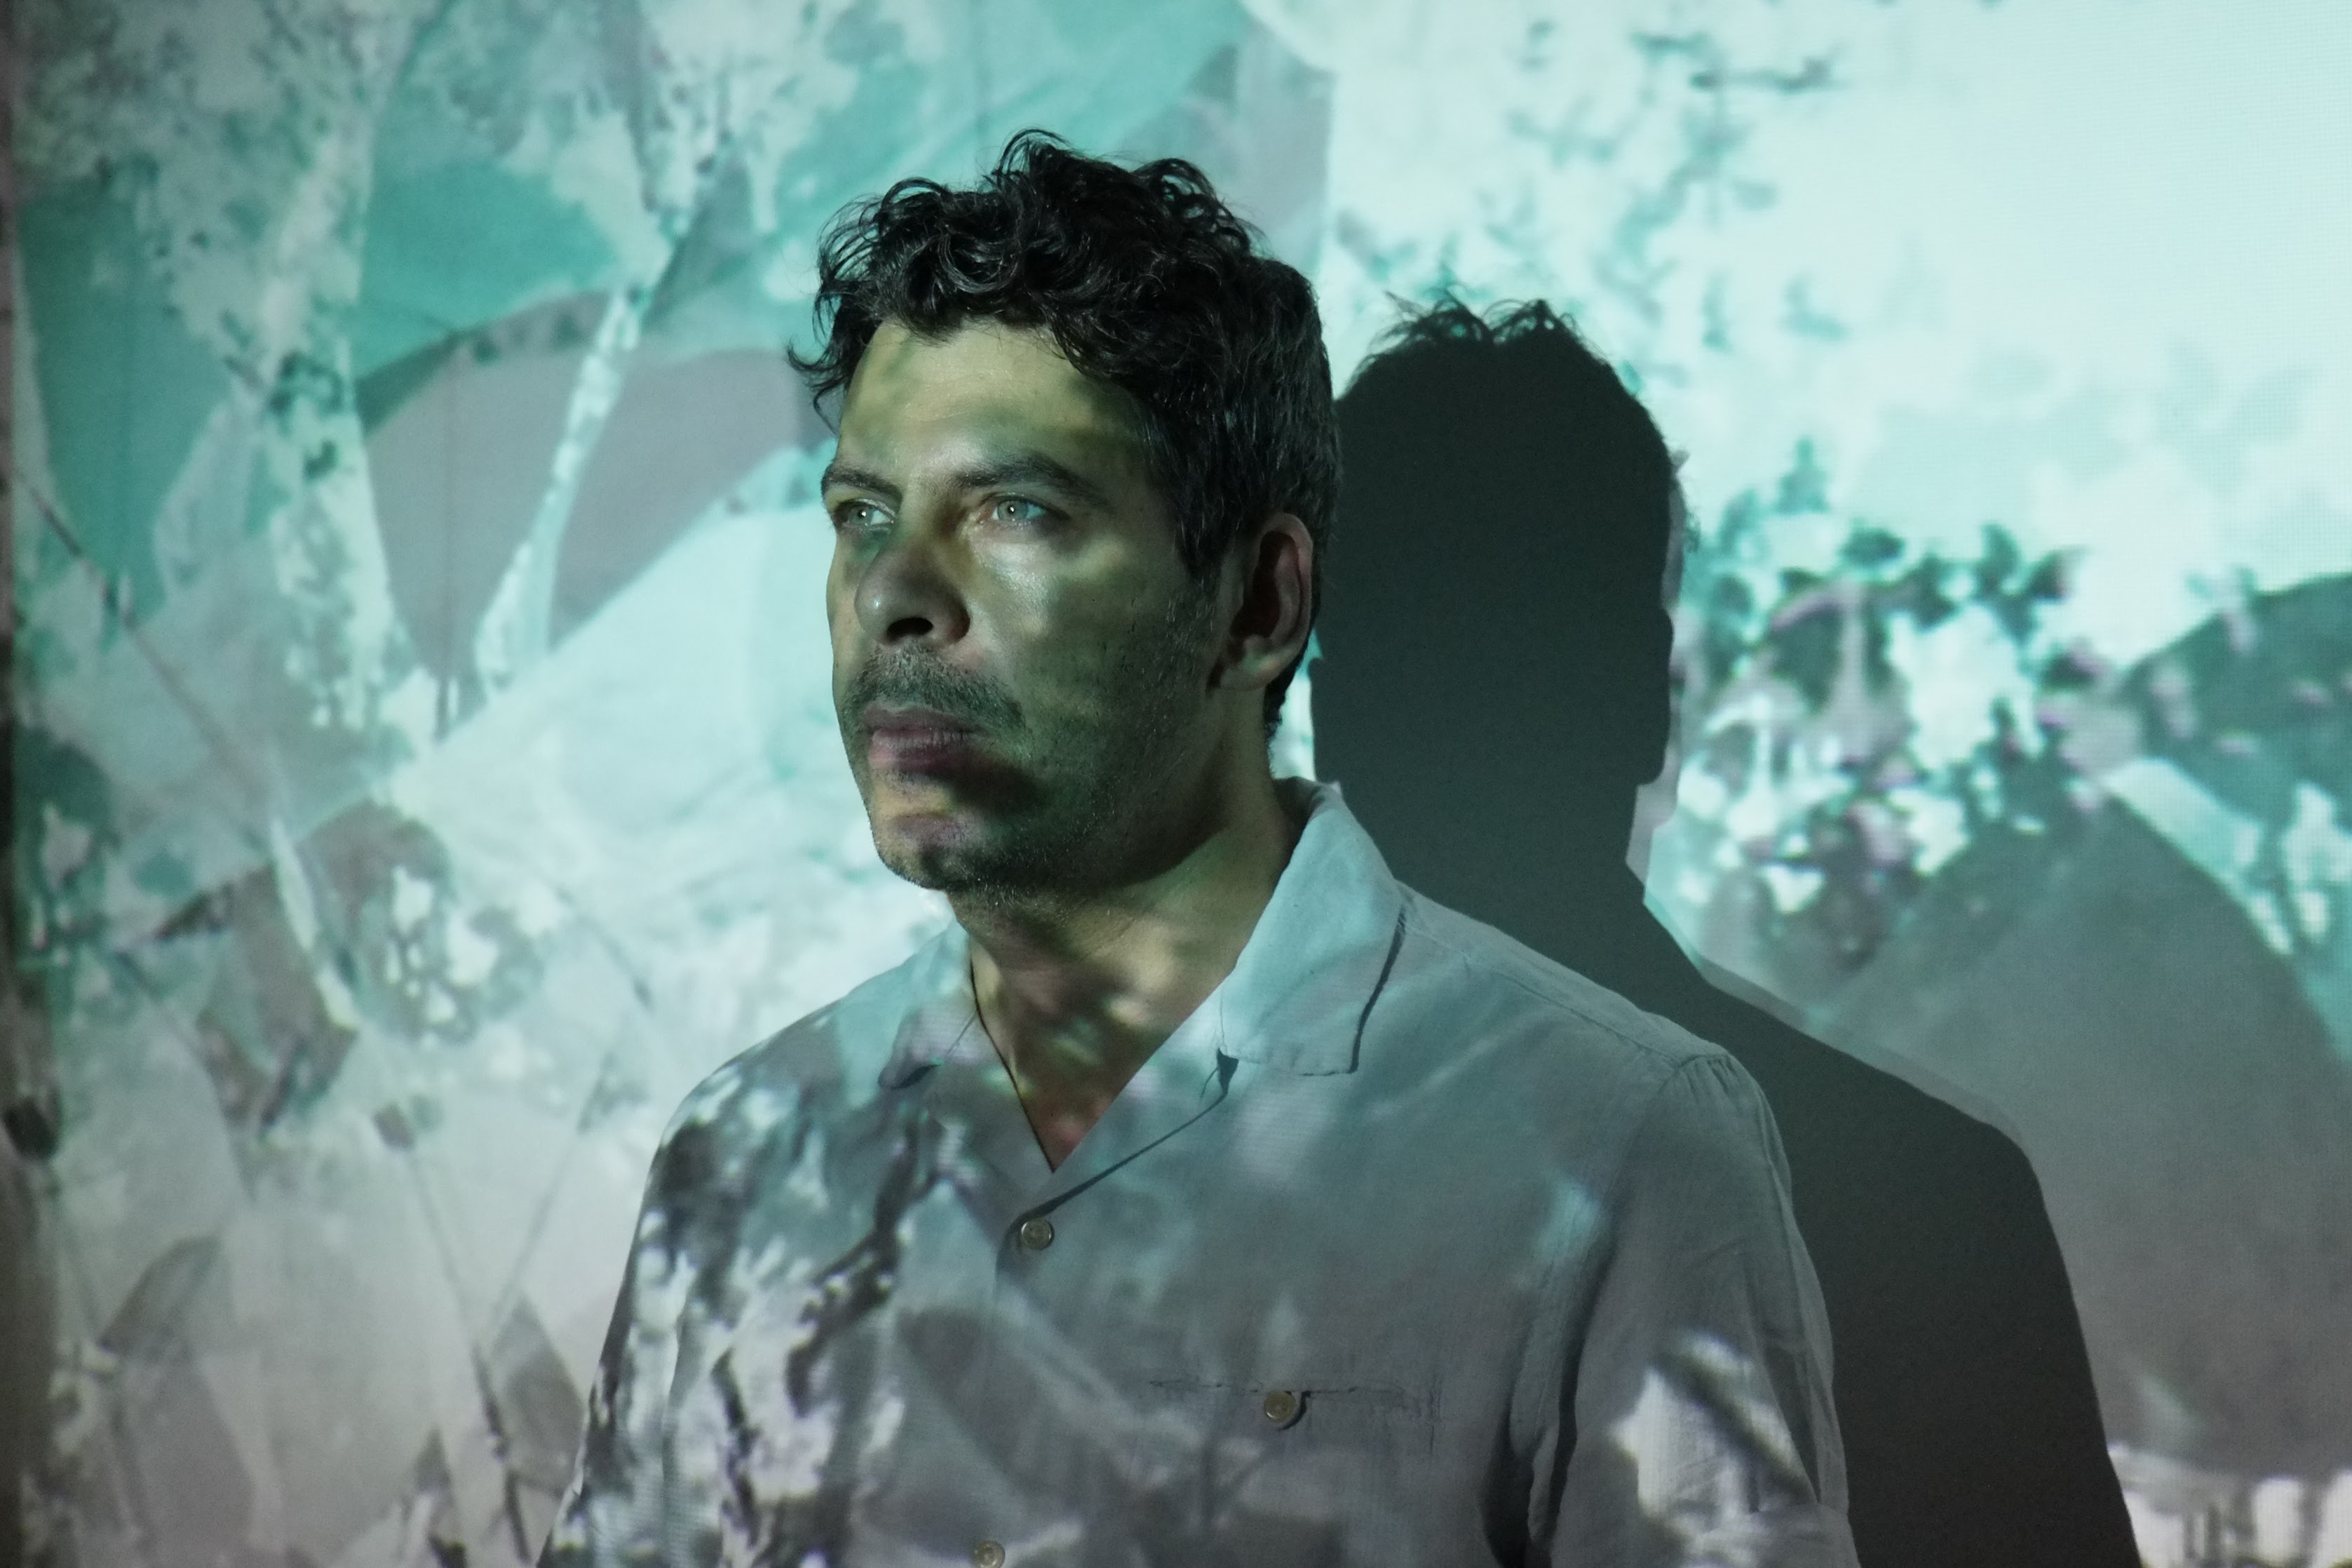 Andrew Pekler crafts synthetic exotica on new LP Tristes Tropiques